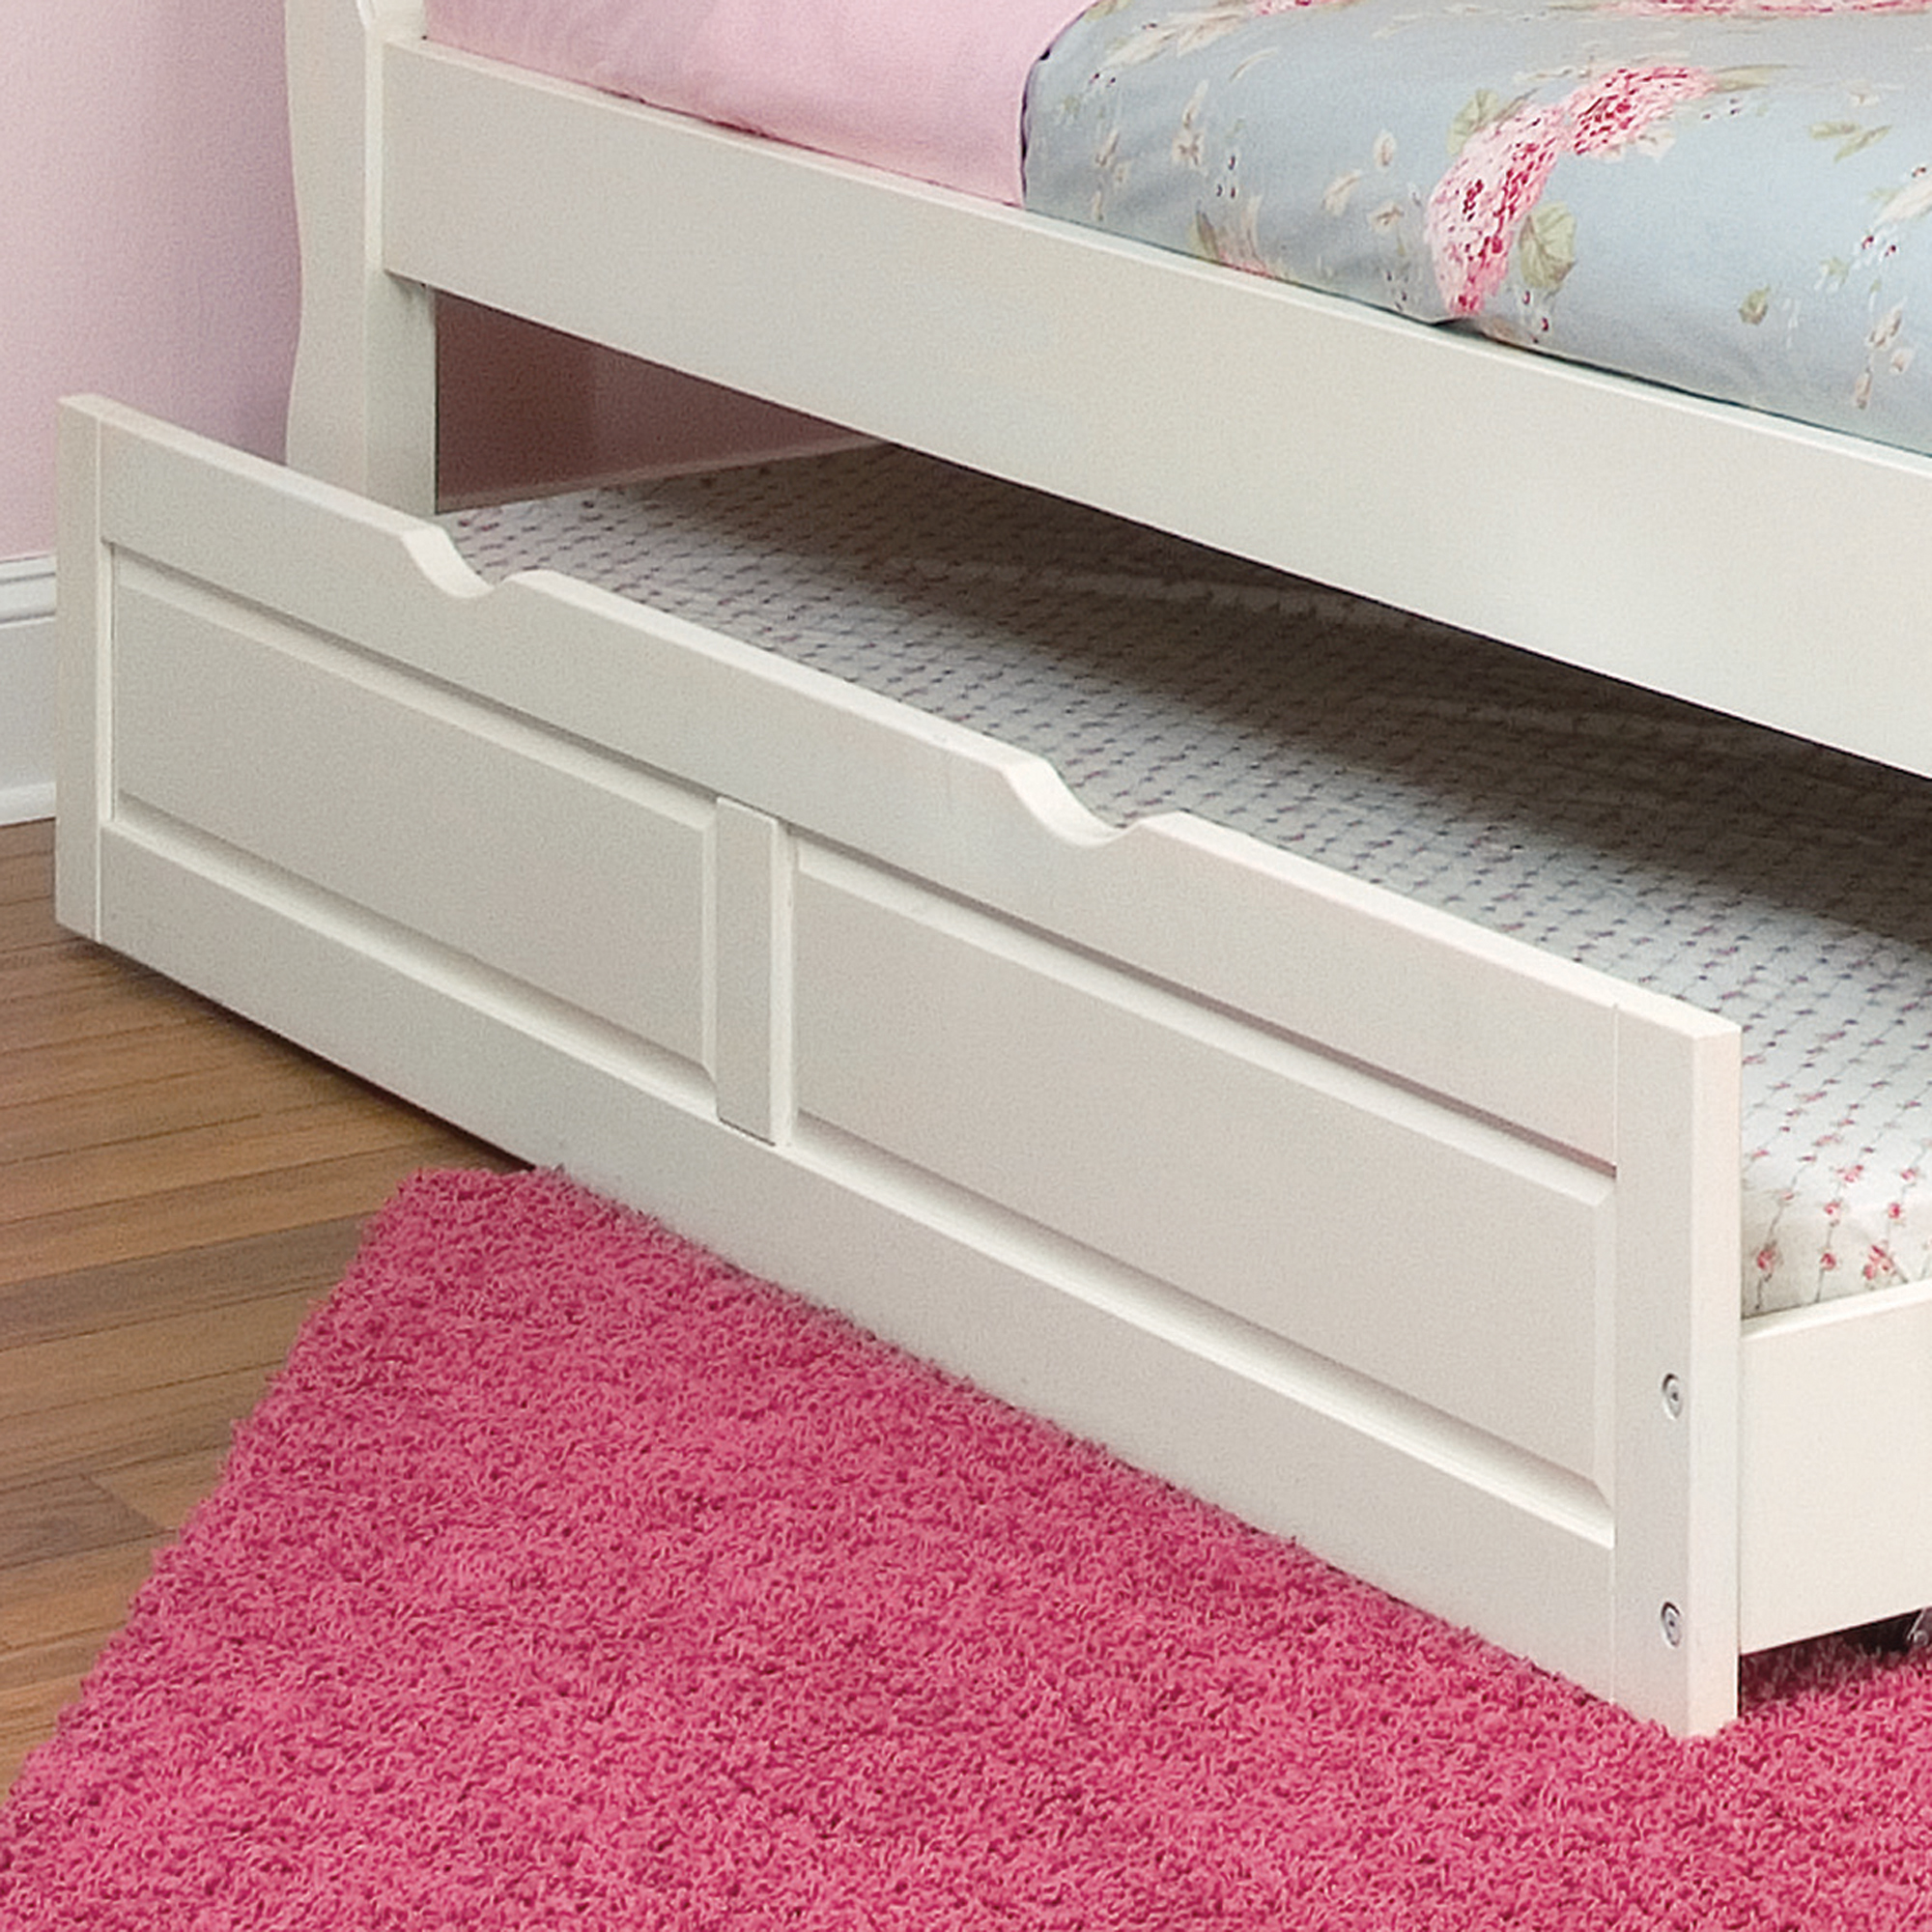 Trundle unit for extra sleeping space or storage